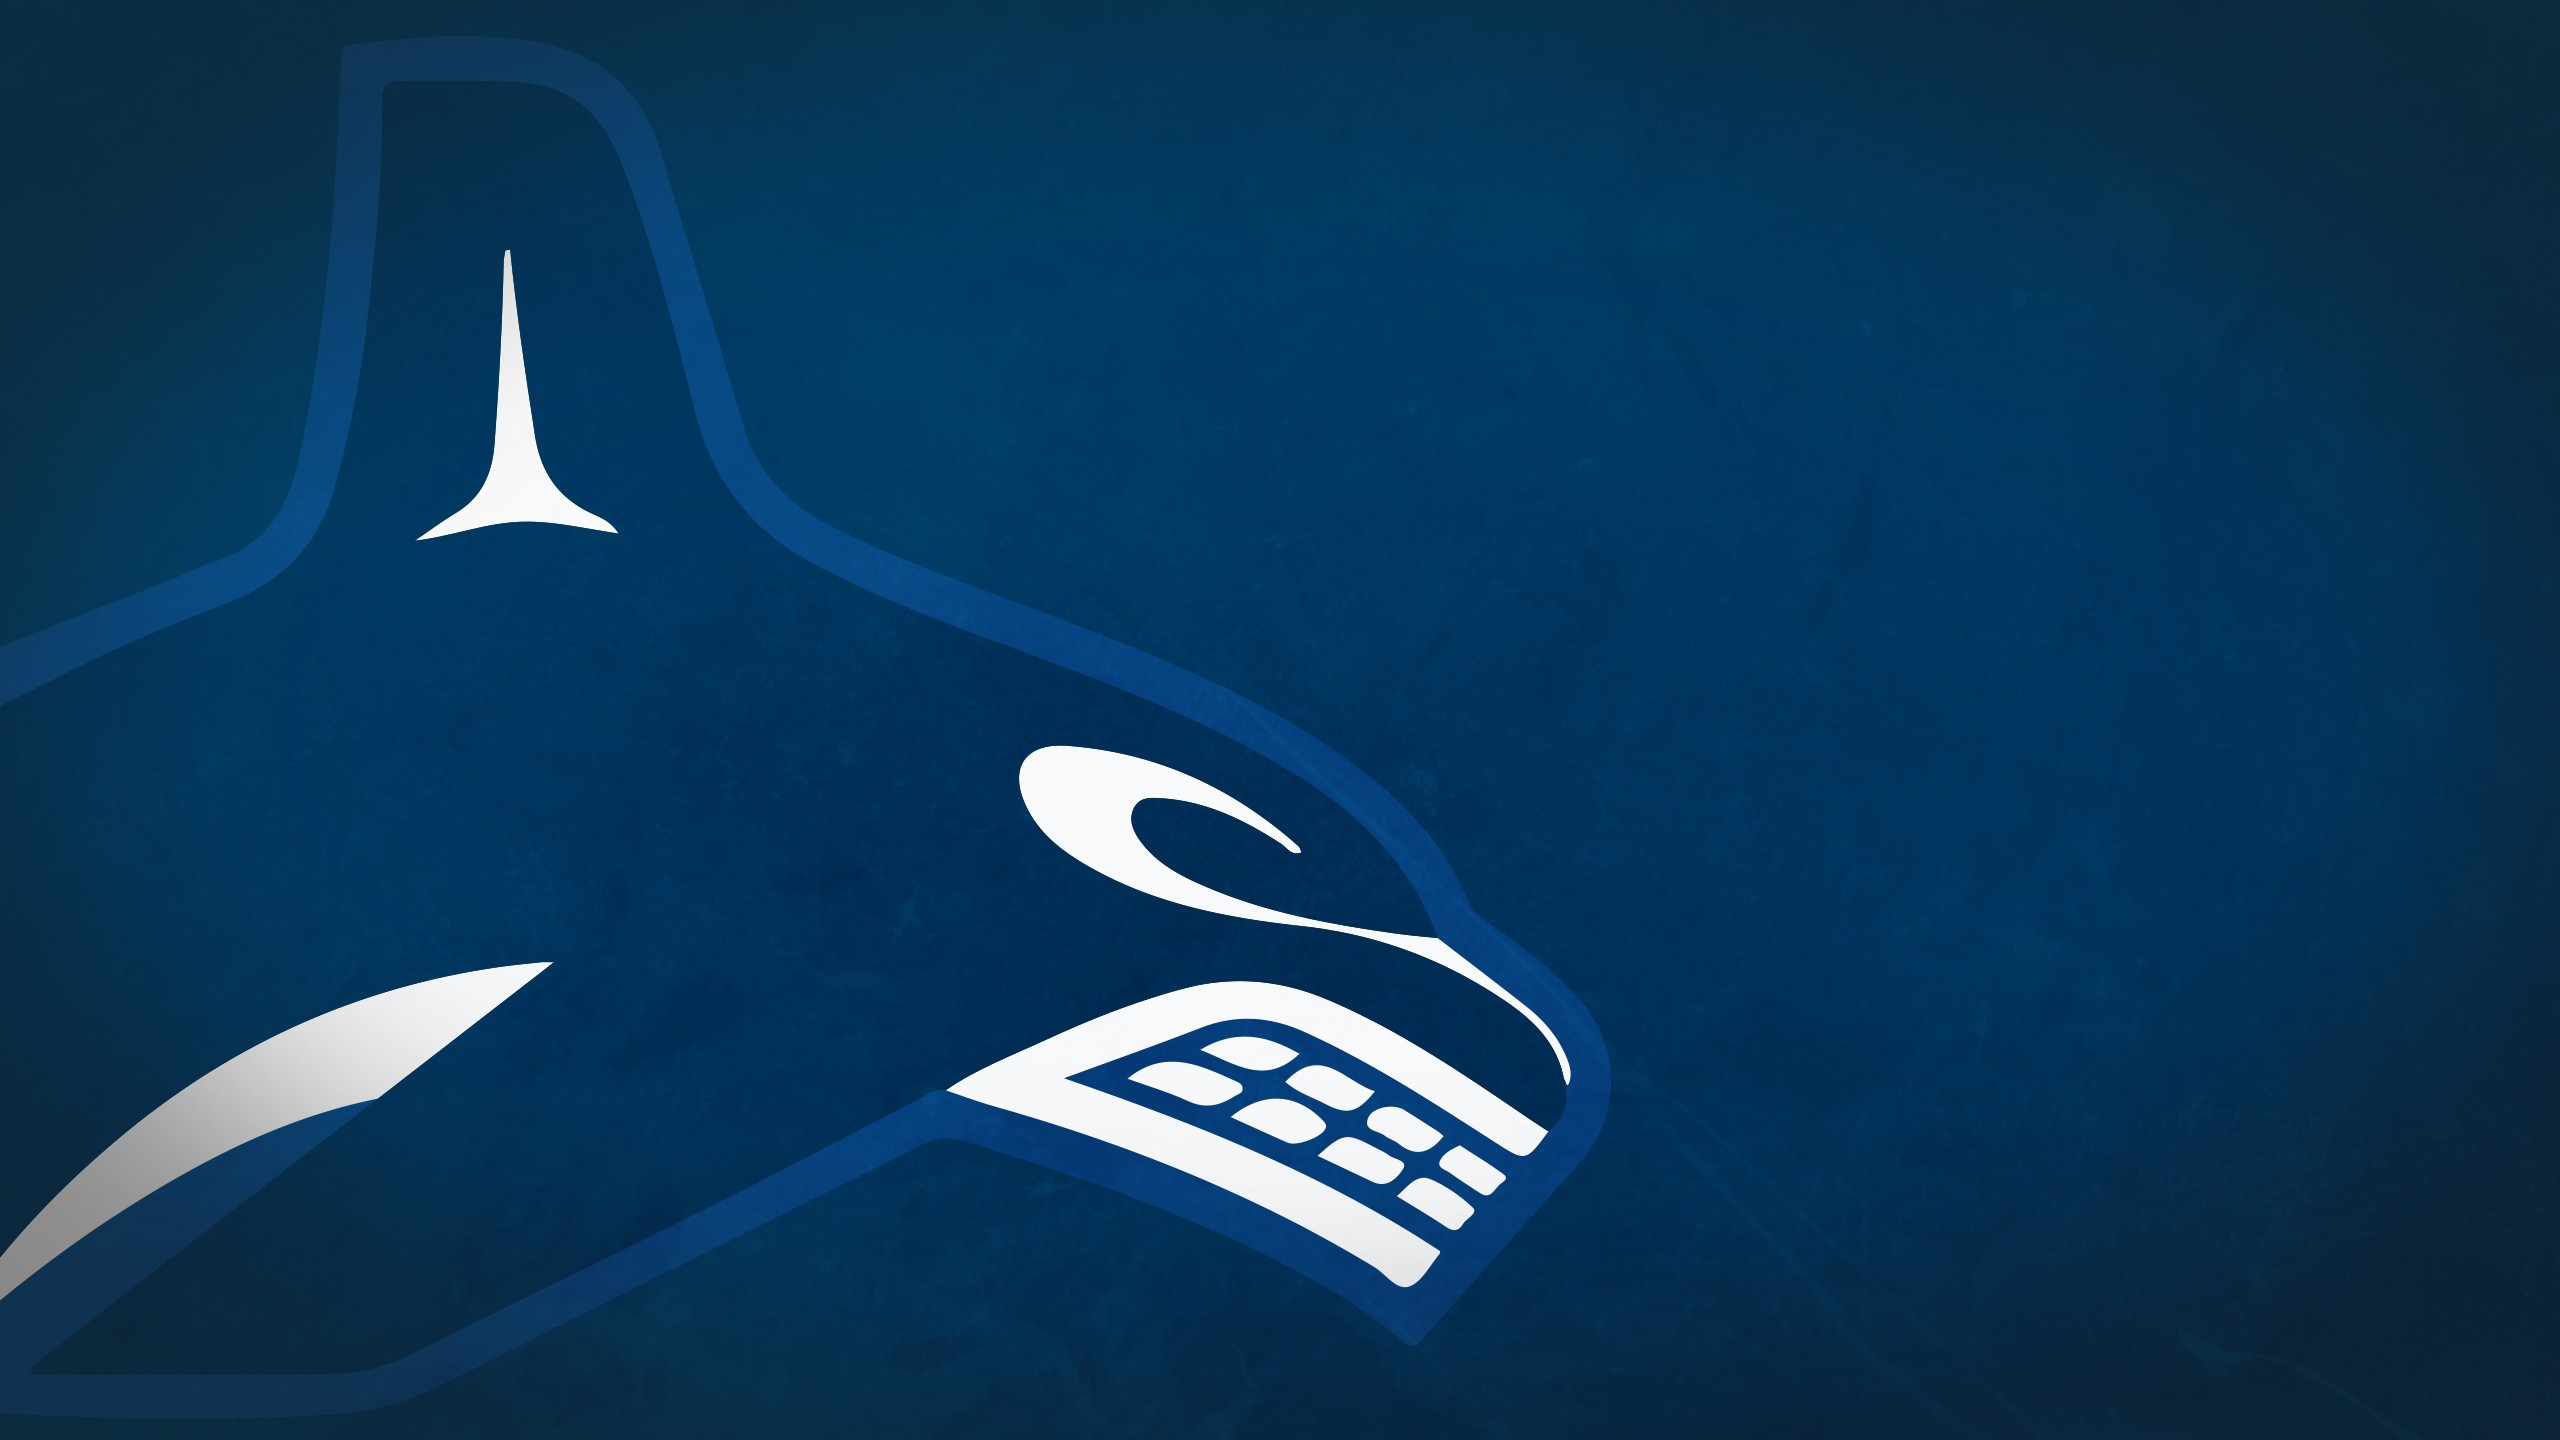 4 Vancouver Canucks HD Wallpapers Backgrounds 2560x1440